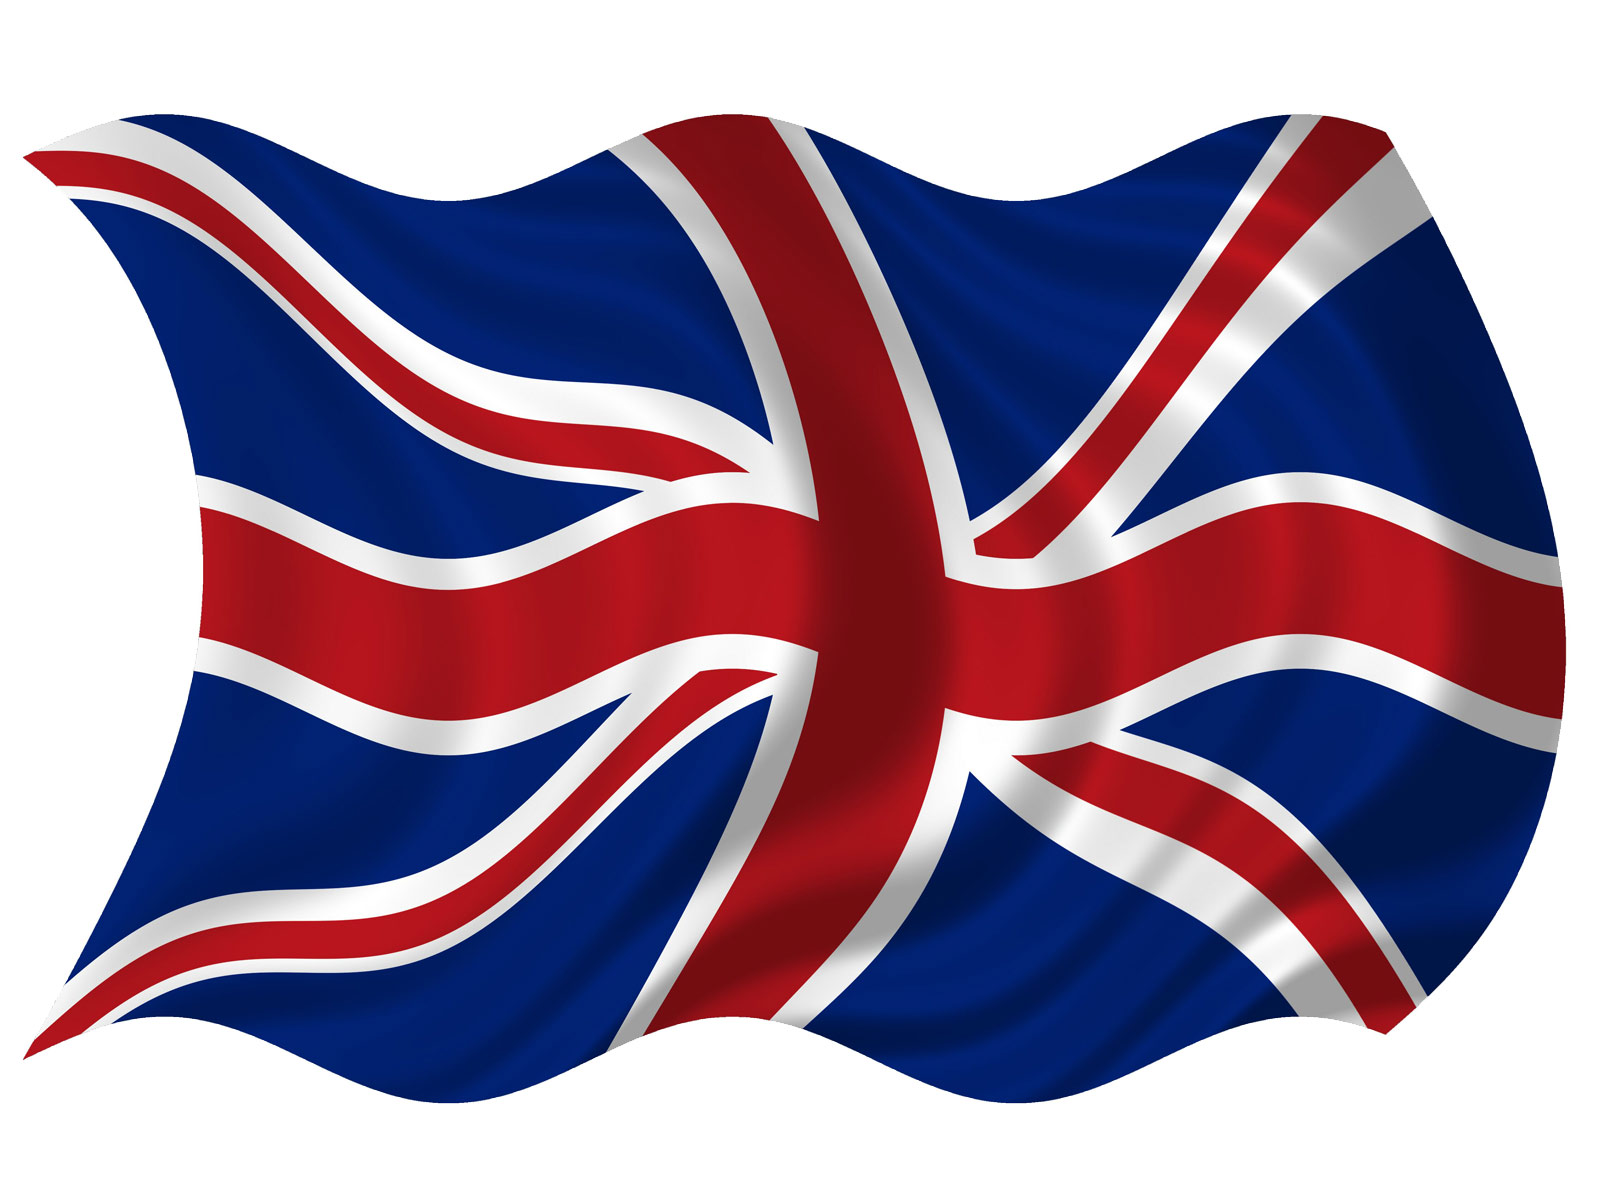 Union Jack British Flag From The Countri-Union Jack British Flag From The Countries Flags Category Date-15